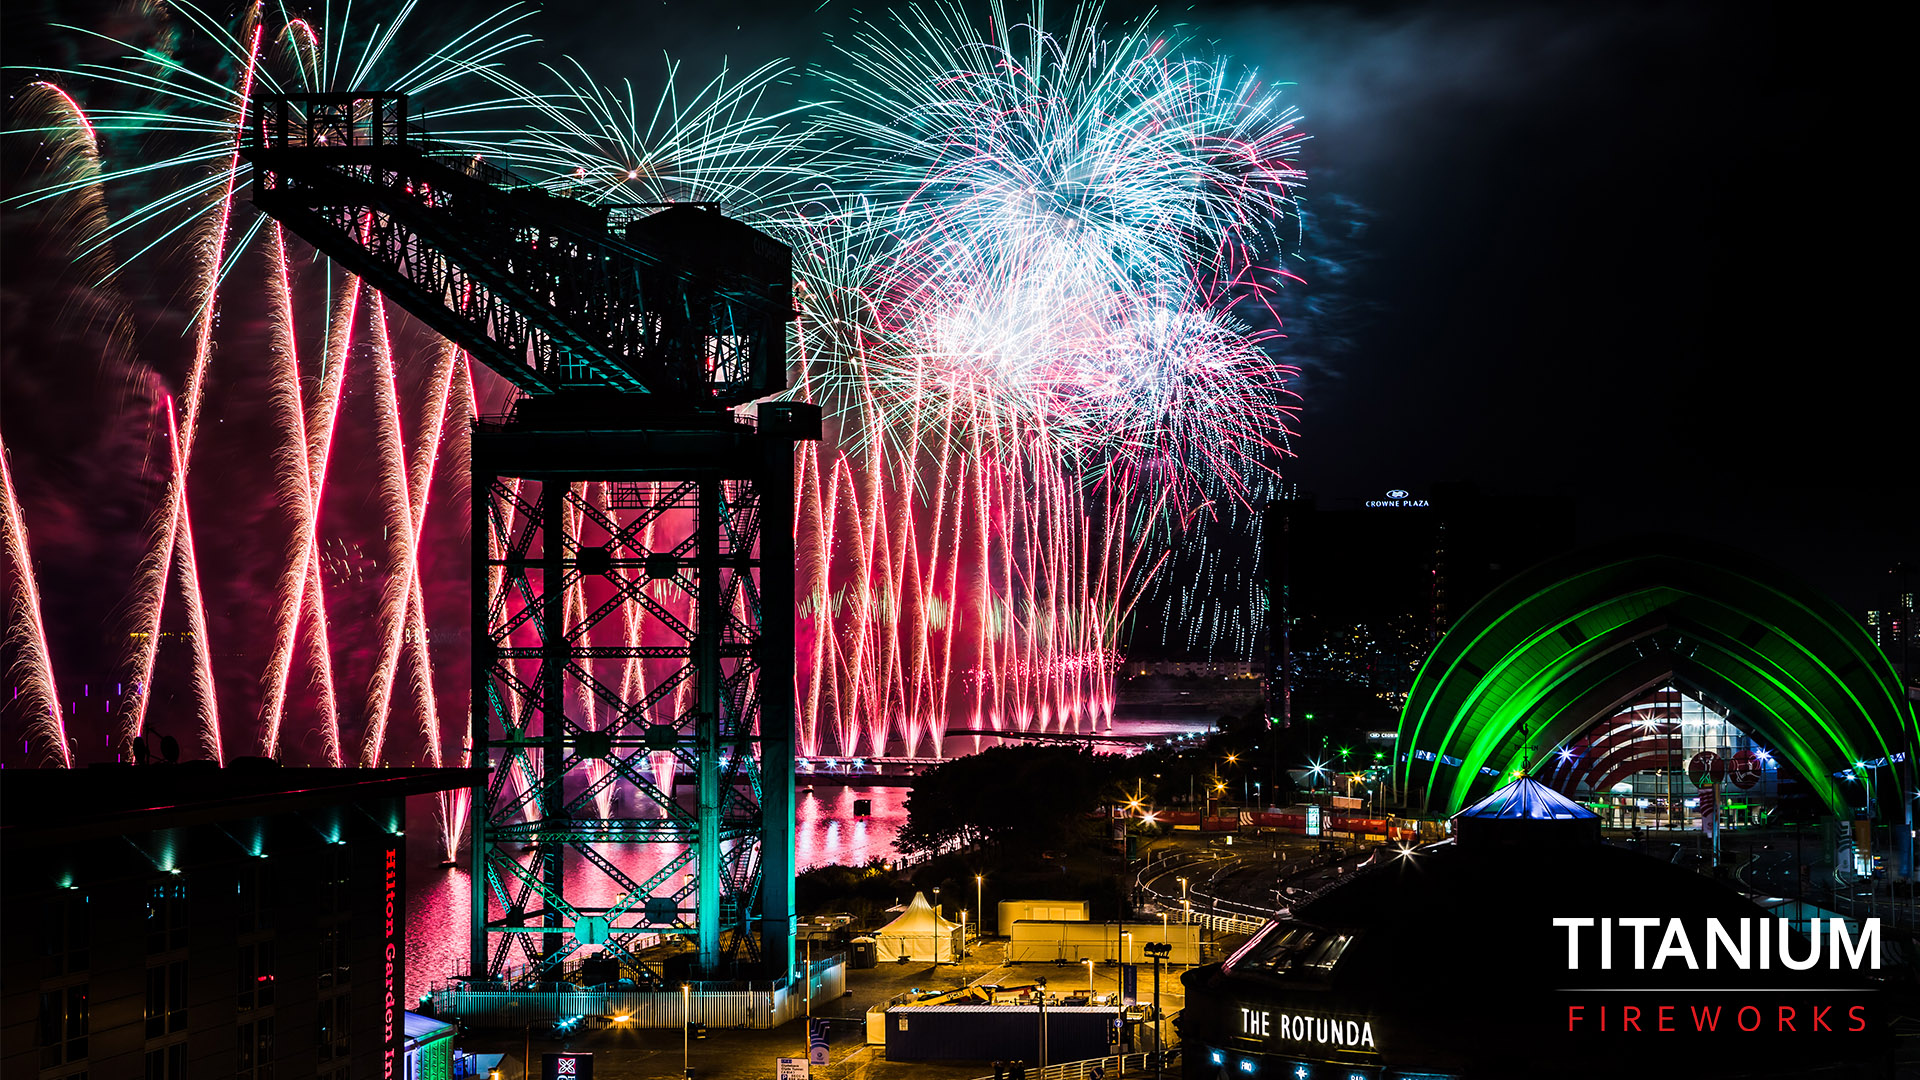 Glasgow, red fireworks, river clyde, opening ceremony, fireworks, blue fireworks, pyrotechnics, titanium fireworks, commonwealth games,